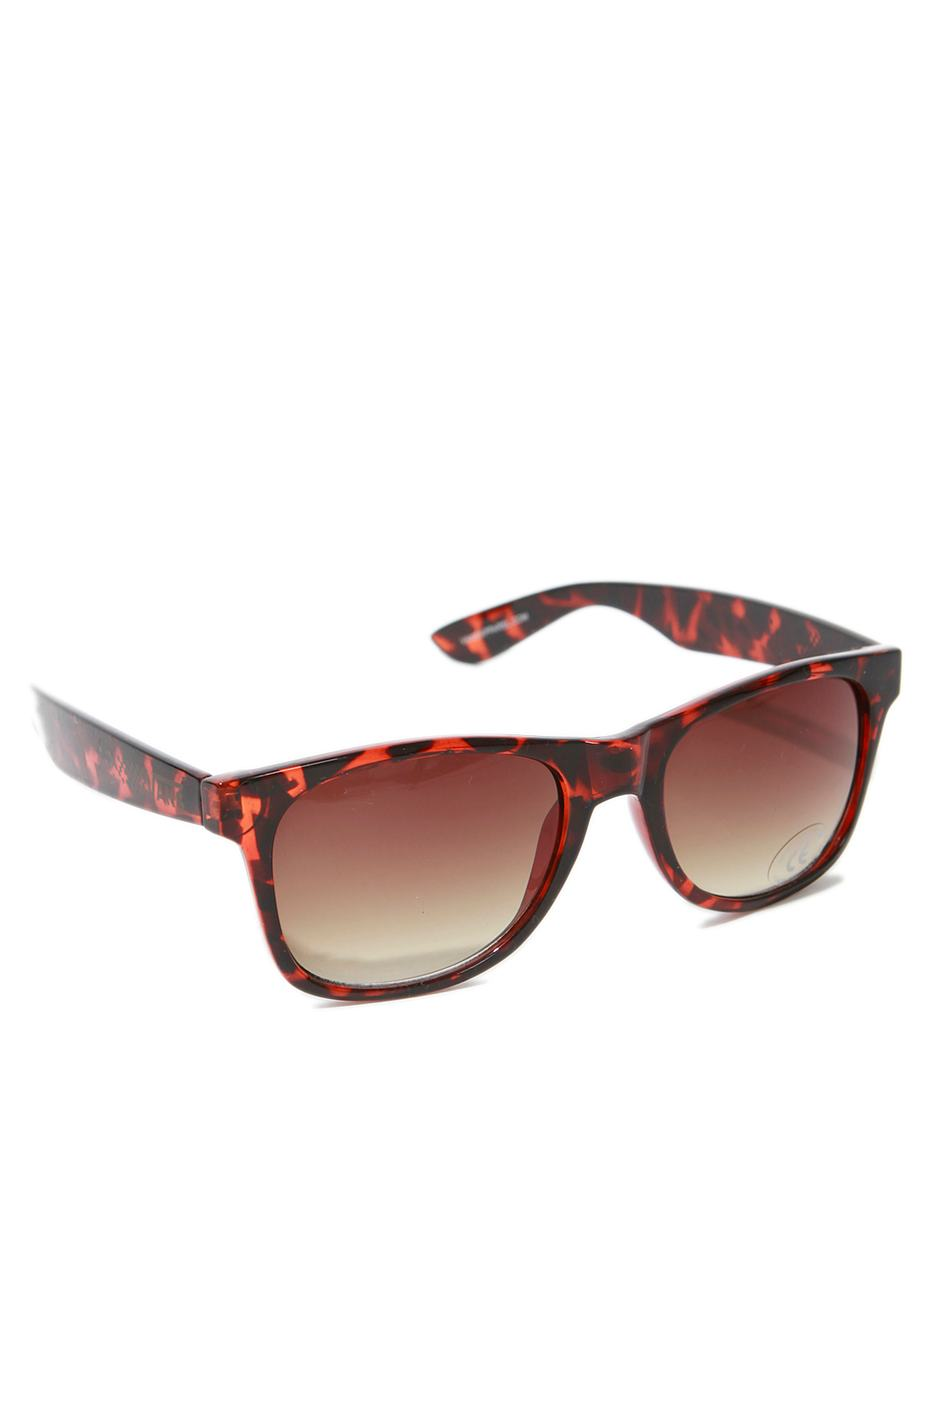 vans sunglasses Brown